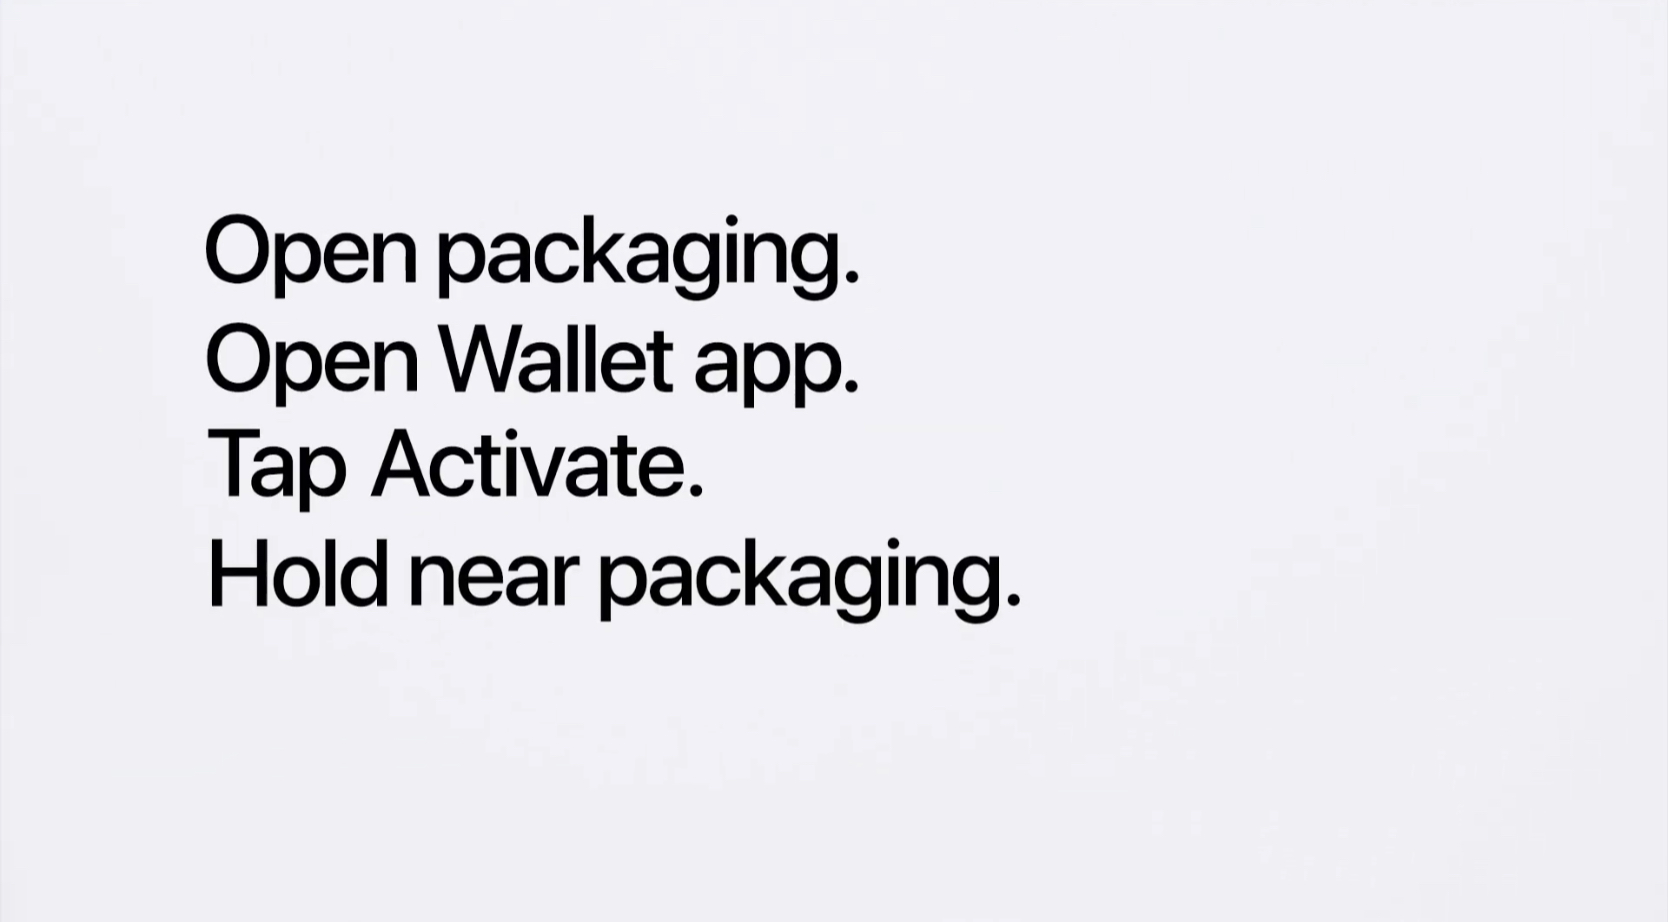 Titanium Apple Card activation with background NFC tag